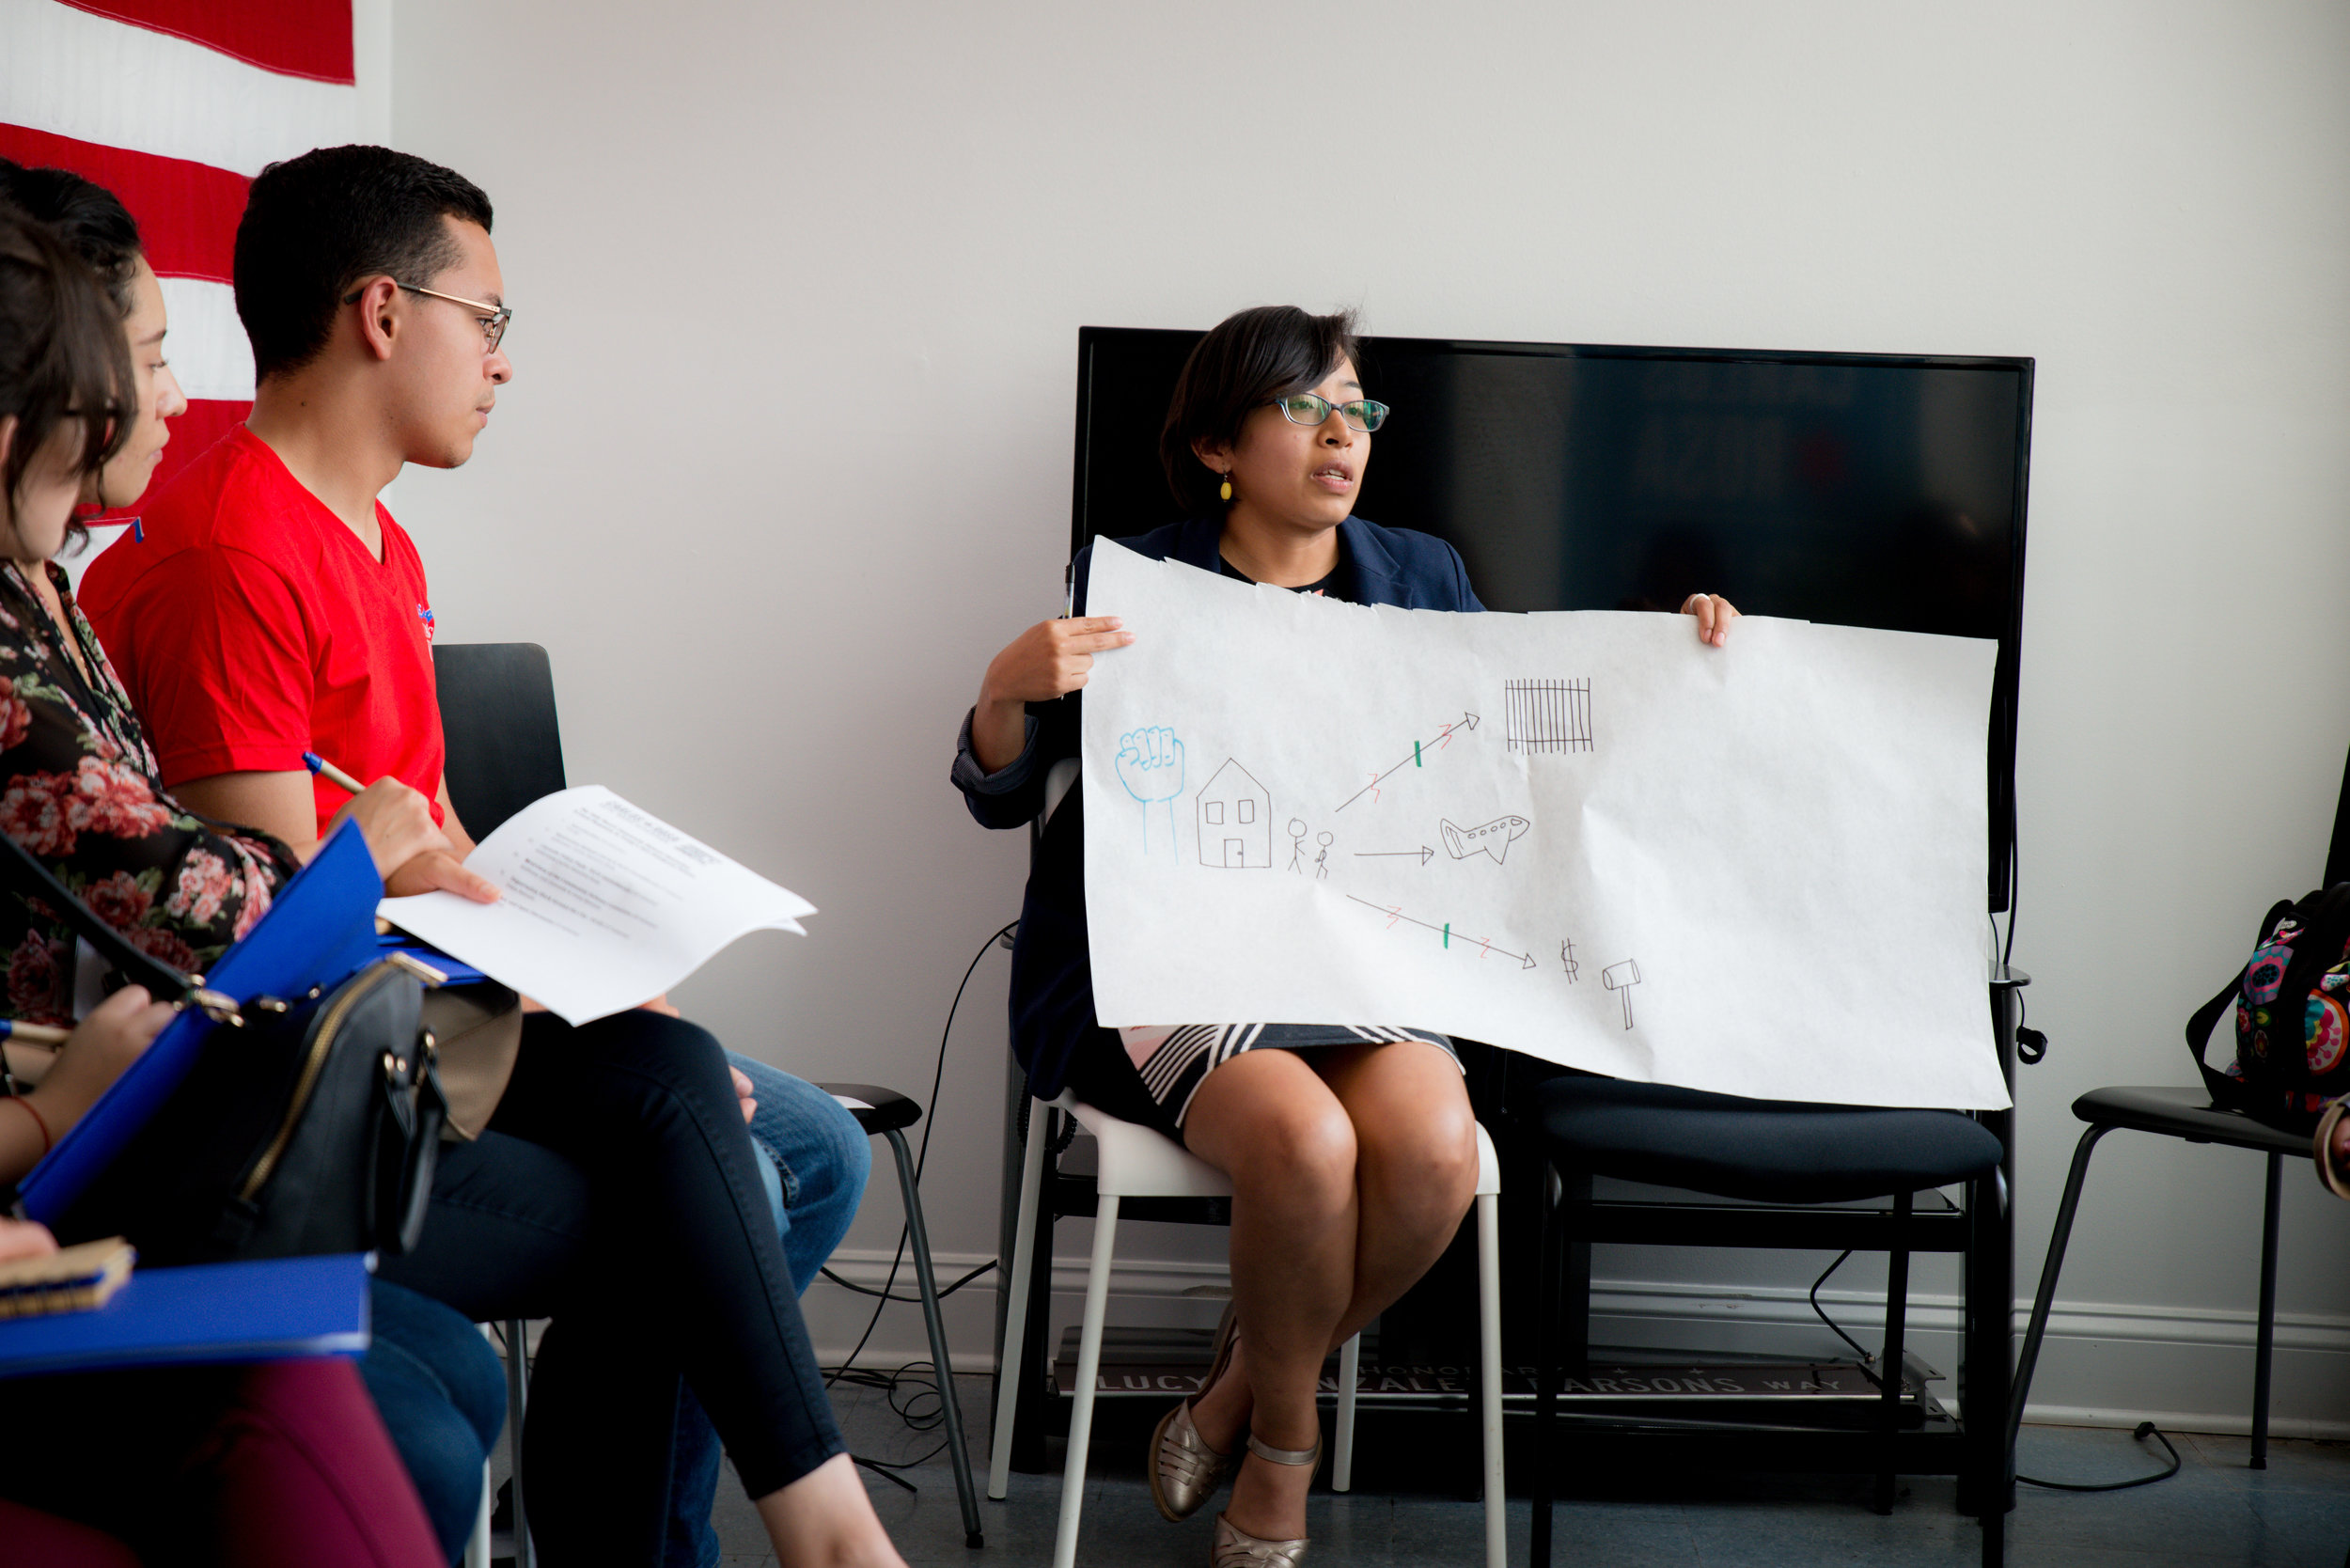 a woman presents notes during a learning journey